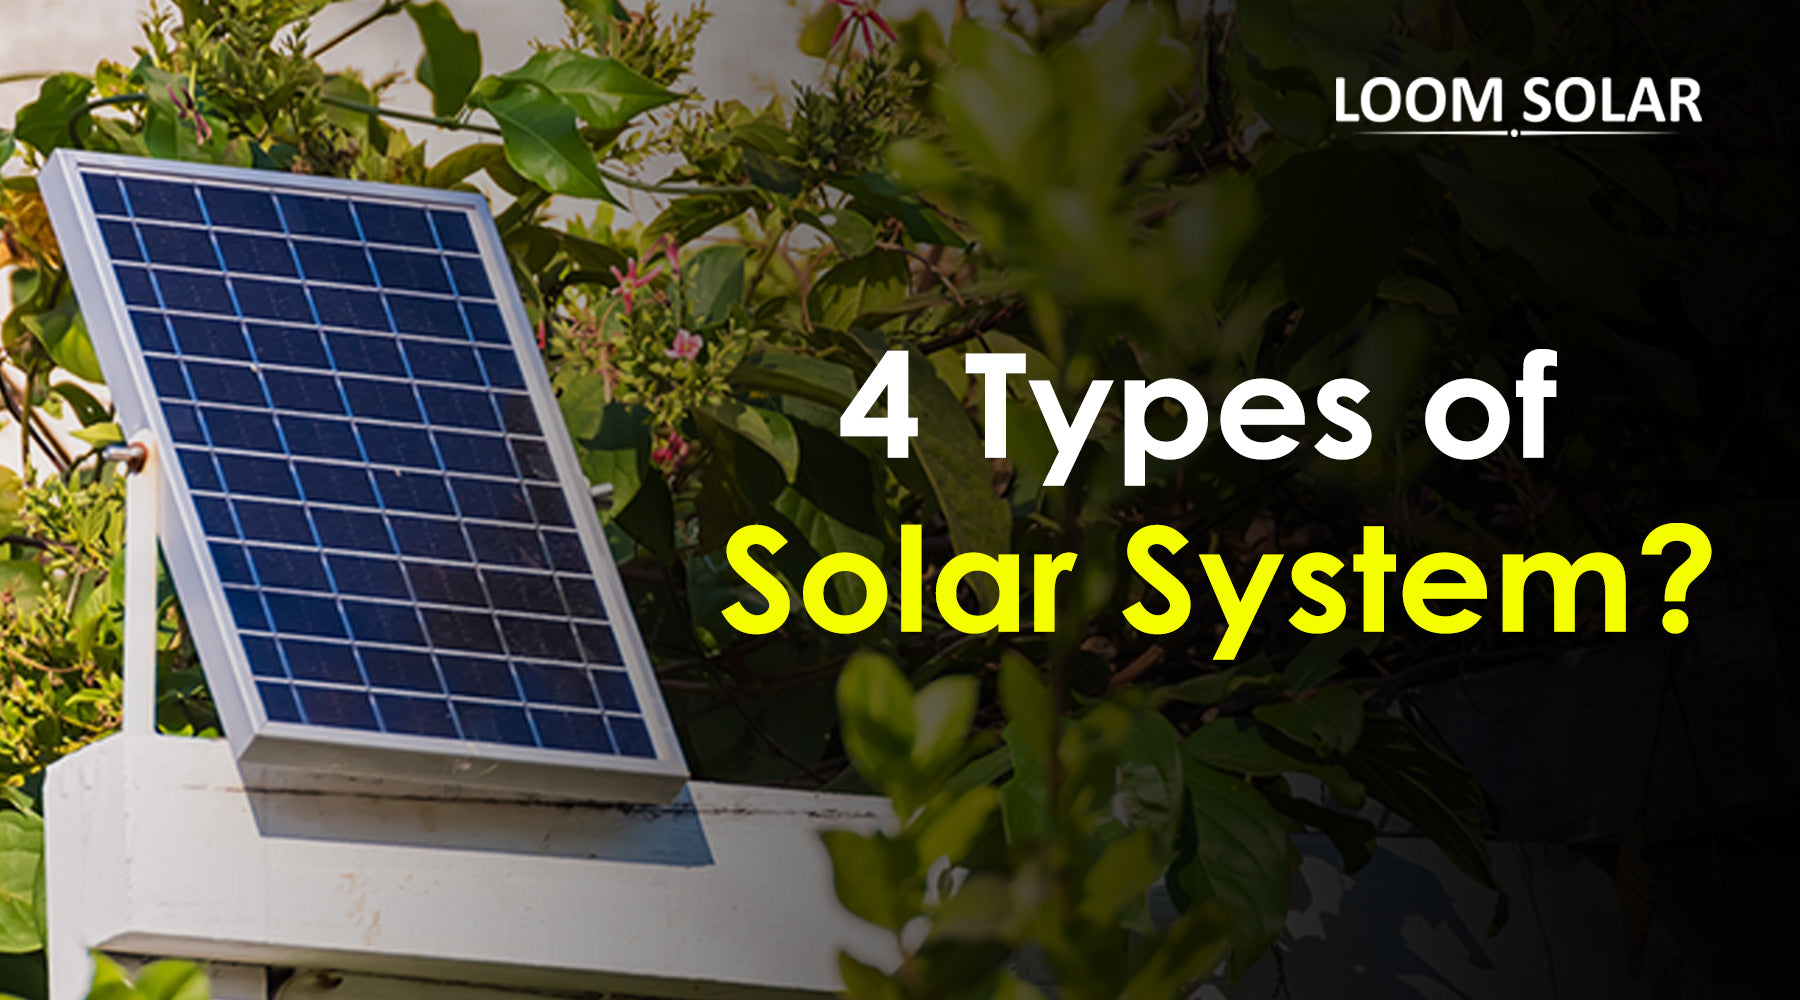 4 Types of Solar System in India